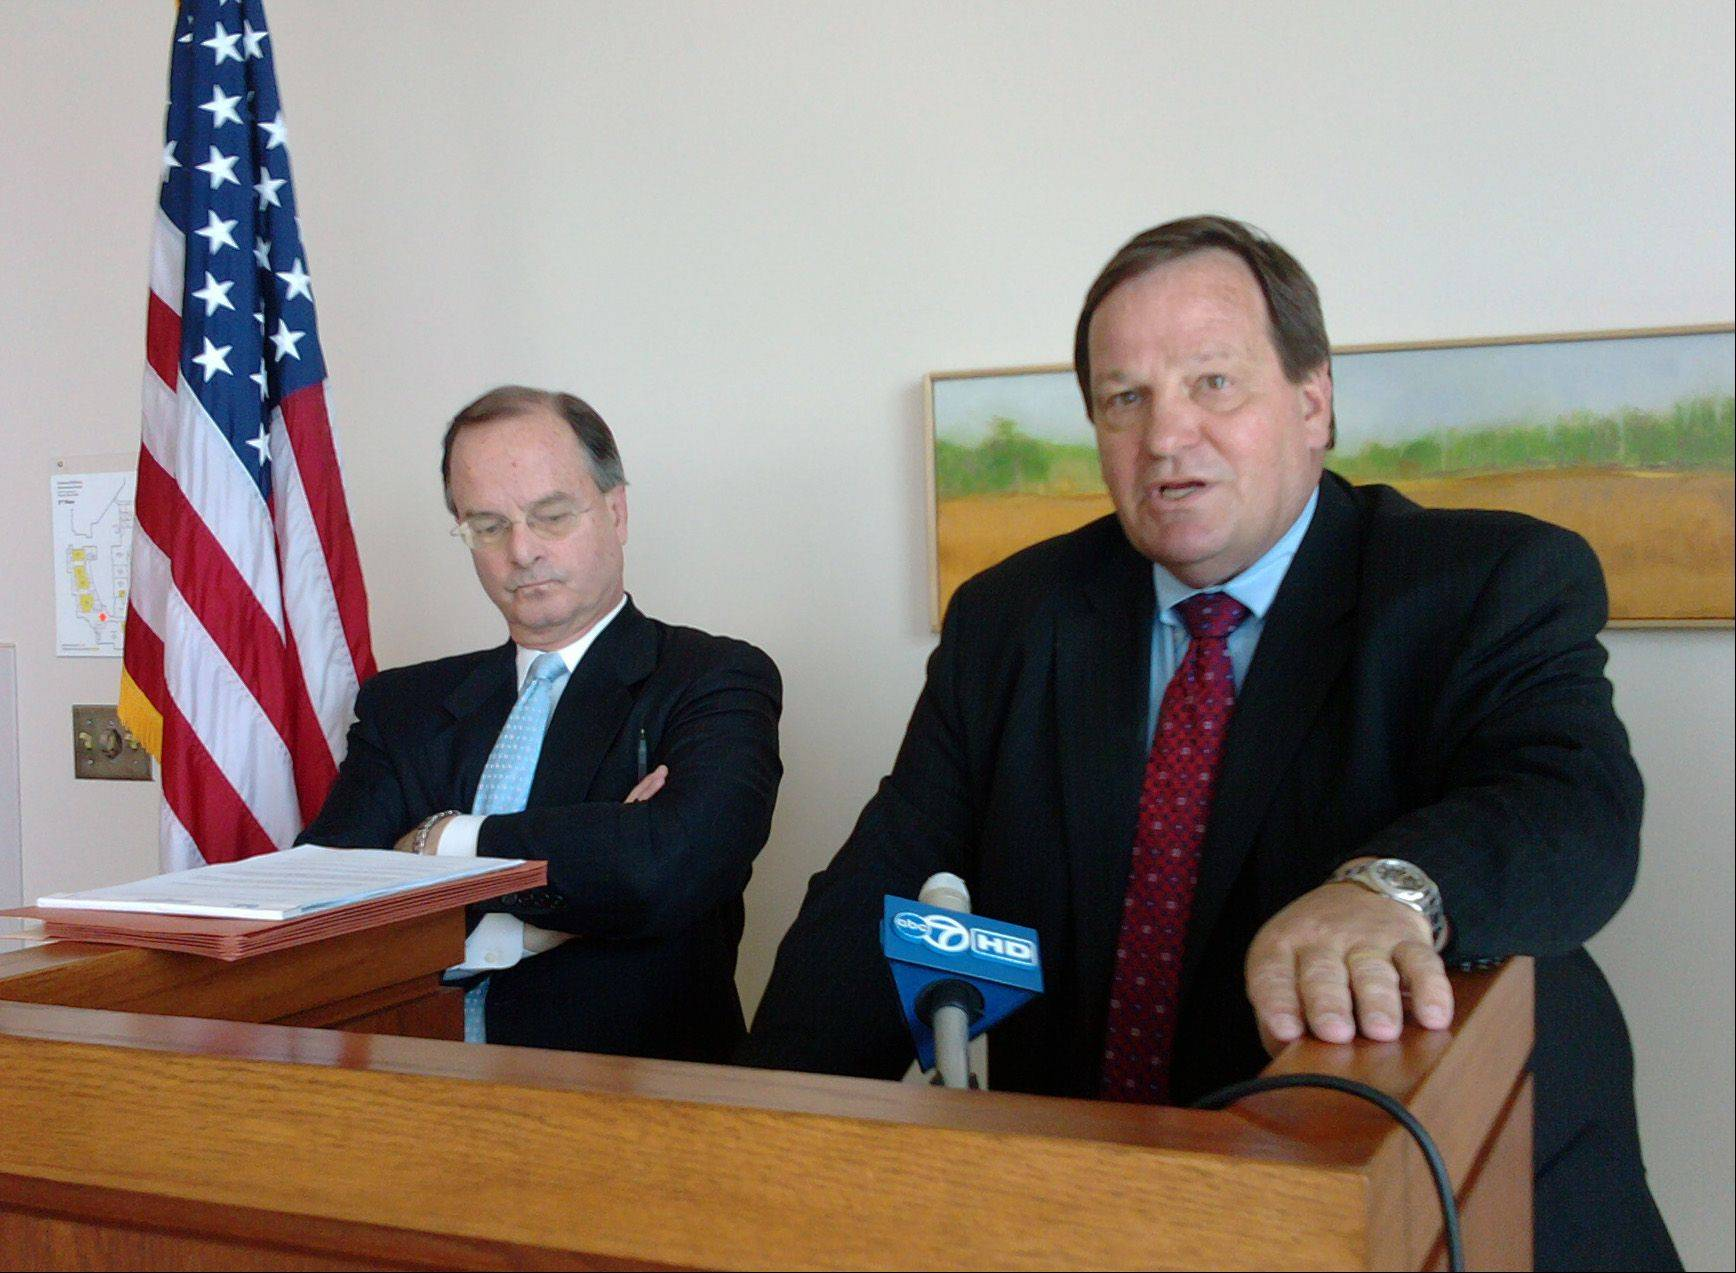 Special prosecutors Thomas McQueen, left, and Henry Tonigan announce more misconduct charges against McHenry County State's Attorney Louis Bianchi and two of his assistants in early 2011 in Woodstock. Bianchi was acquitted of these allegations in August 2011.